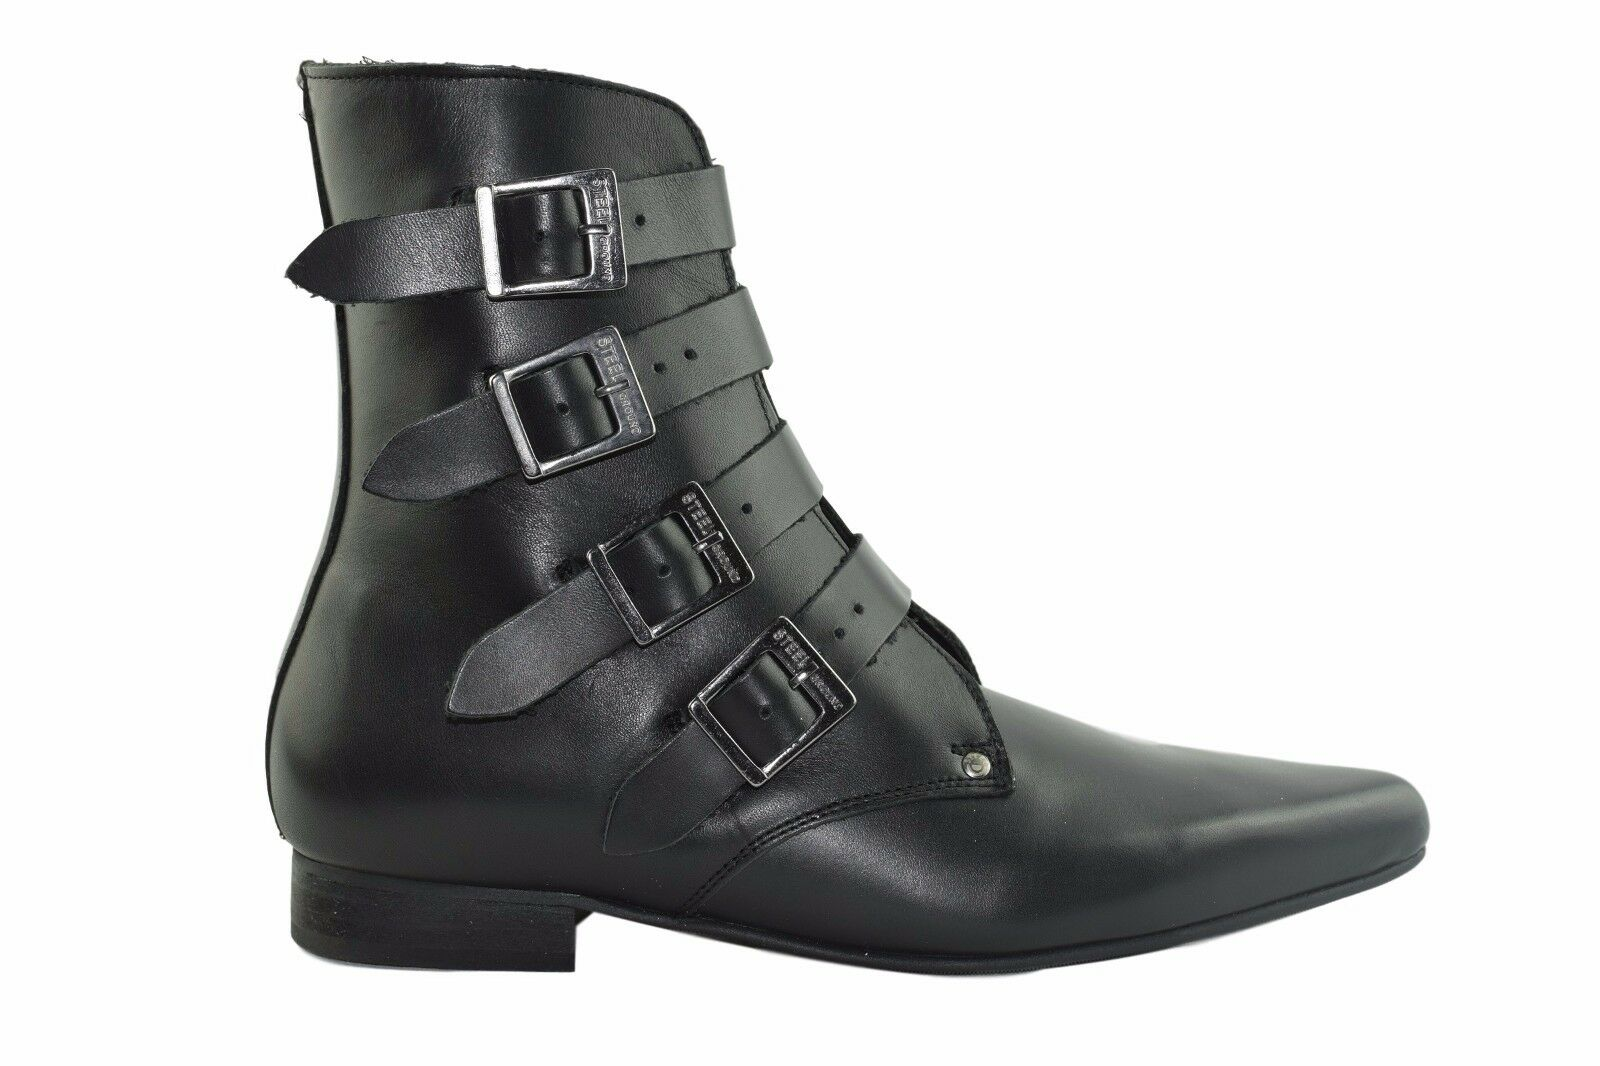 Steel Ground schwarz Leder Winklepicker Rock Stiefel 4 Straps Buckle Sb021Z92.Nik